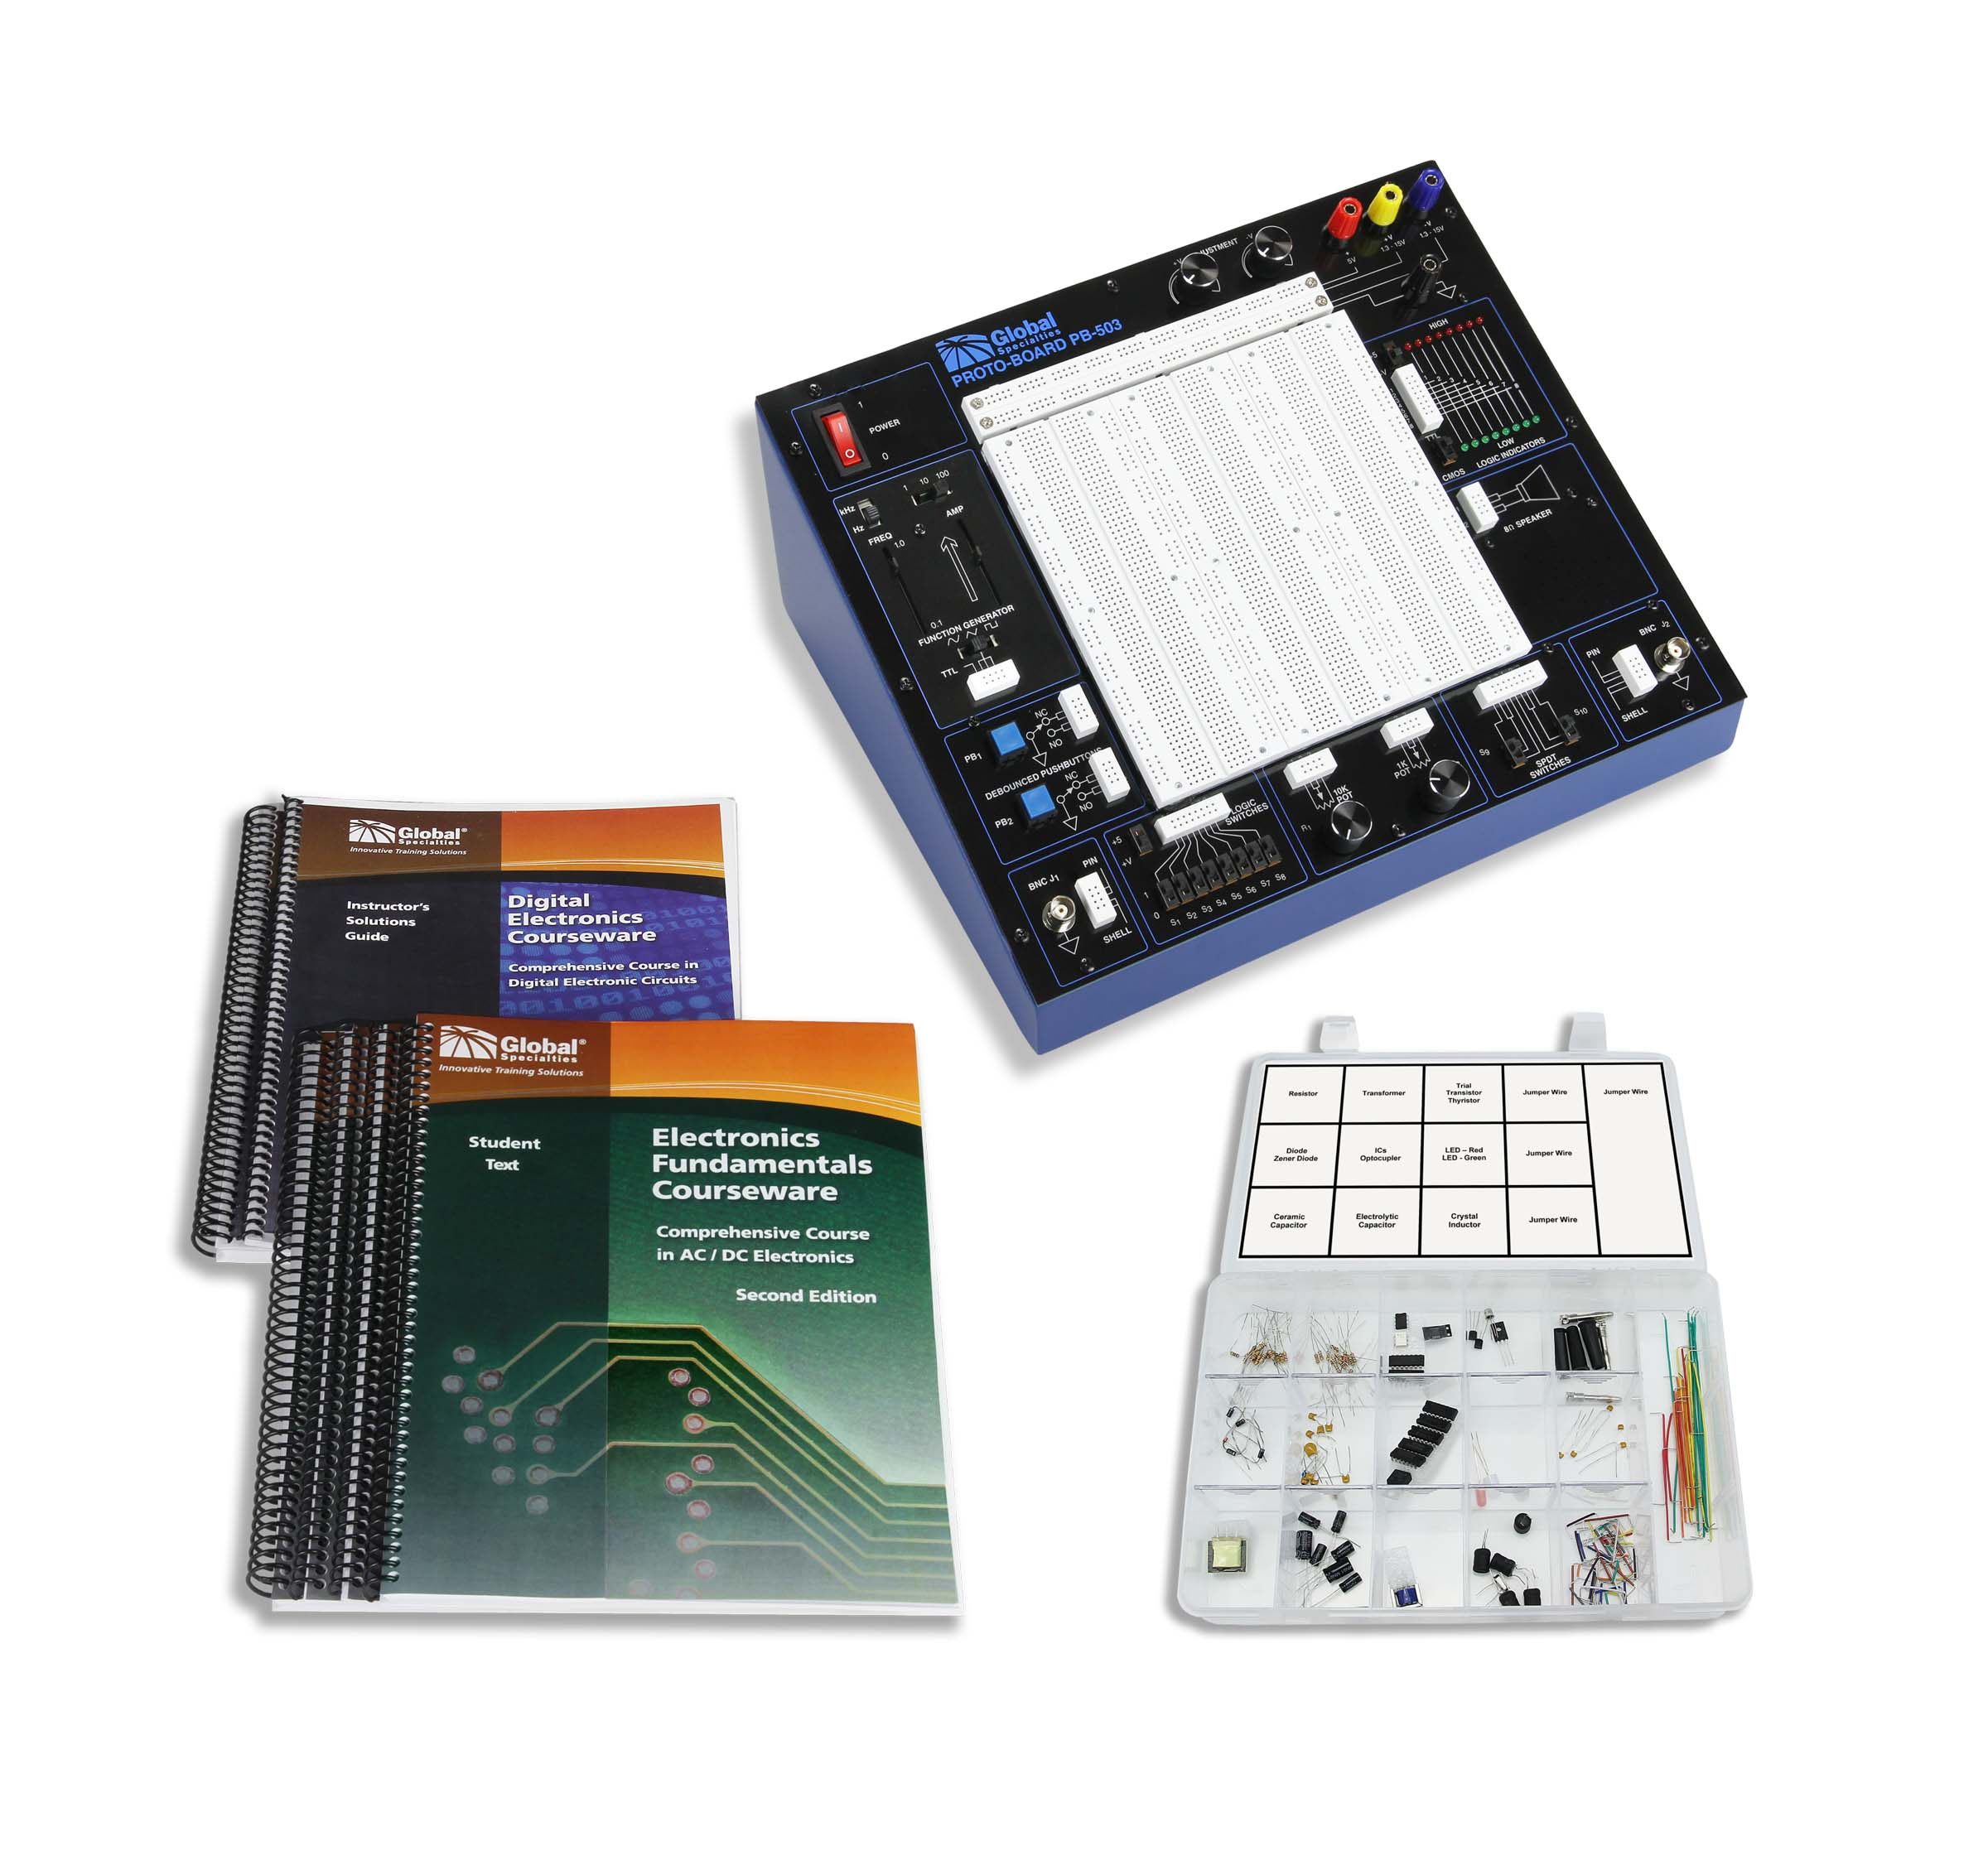 Global Specialties PB-503LAB PB-503 Plus Courseware & Kit Photo